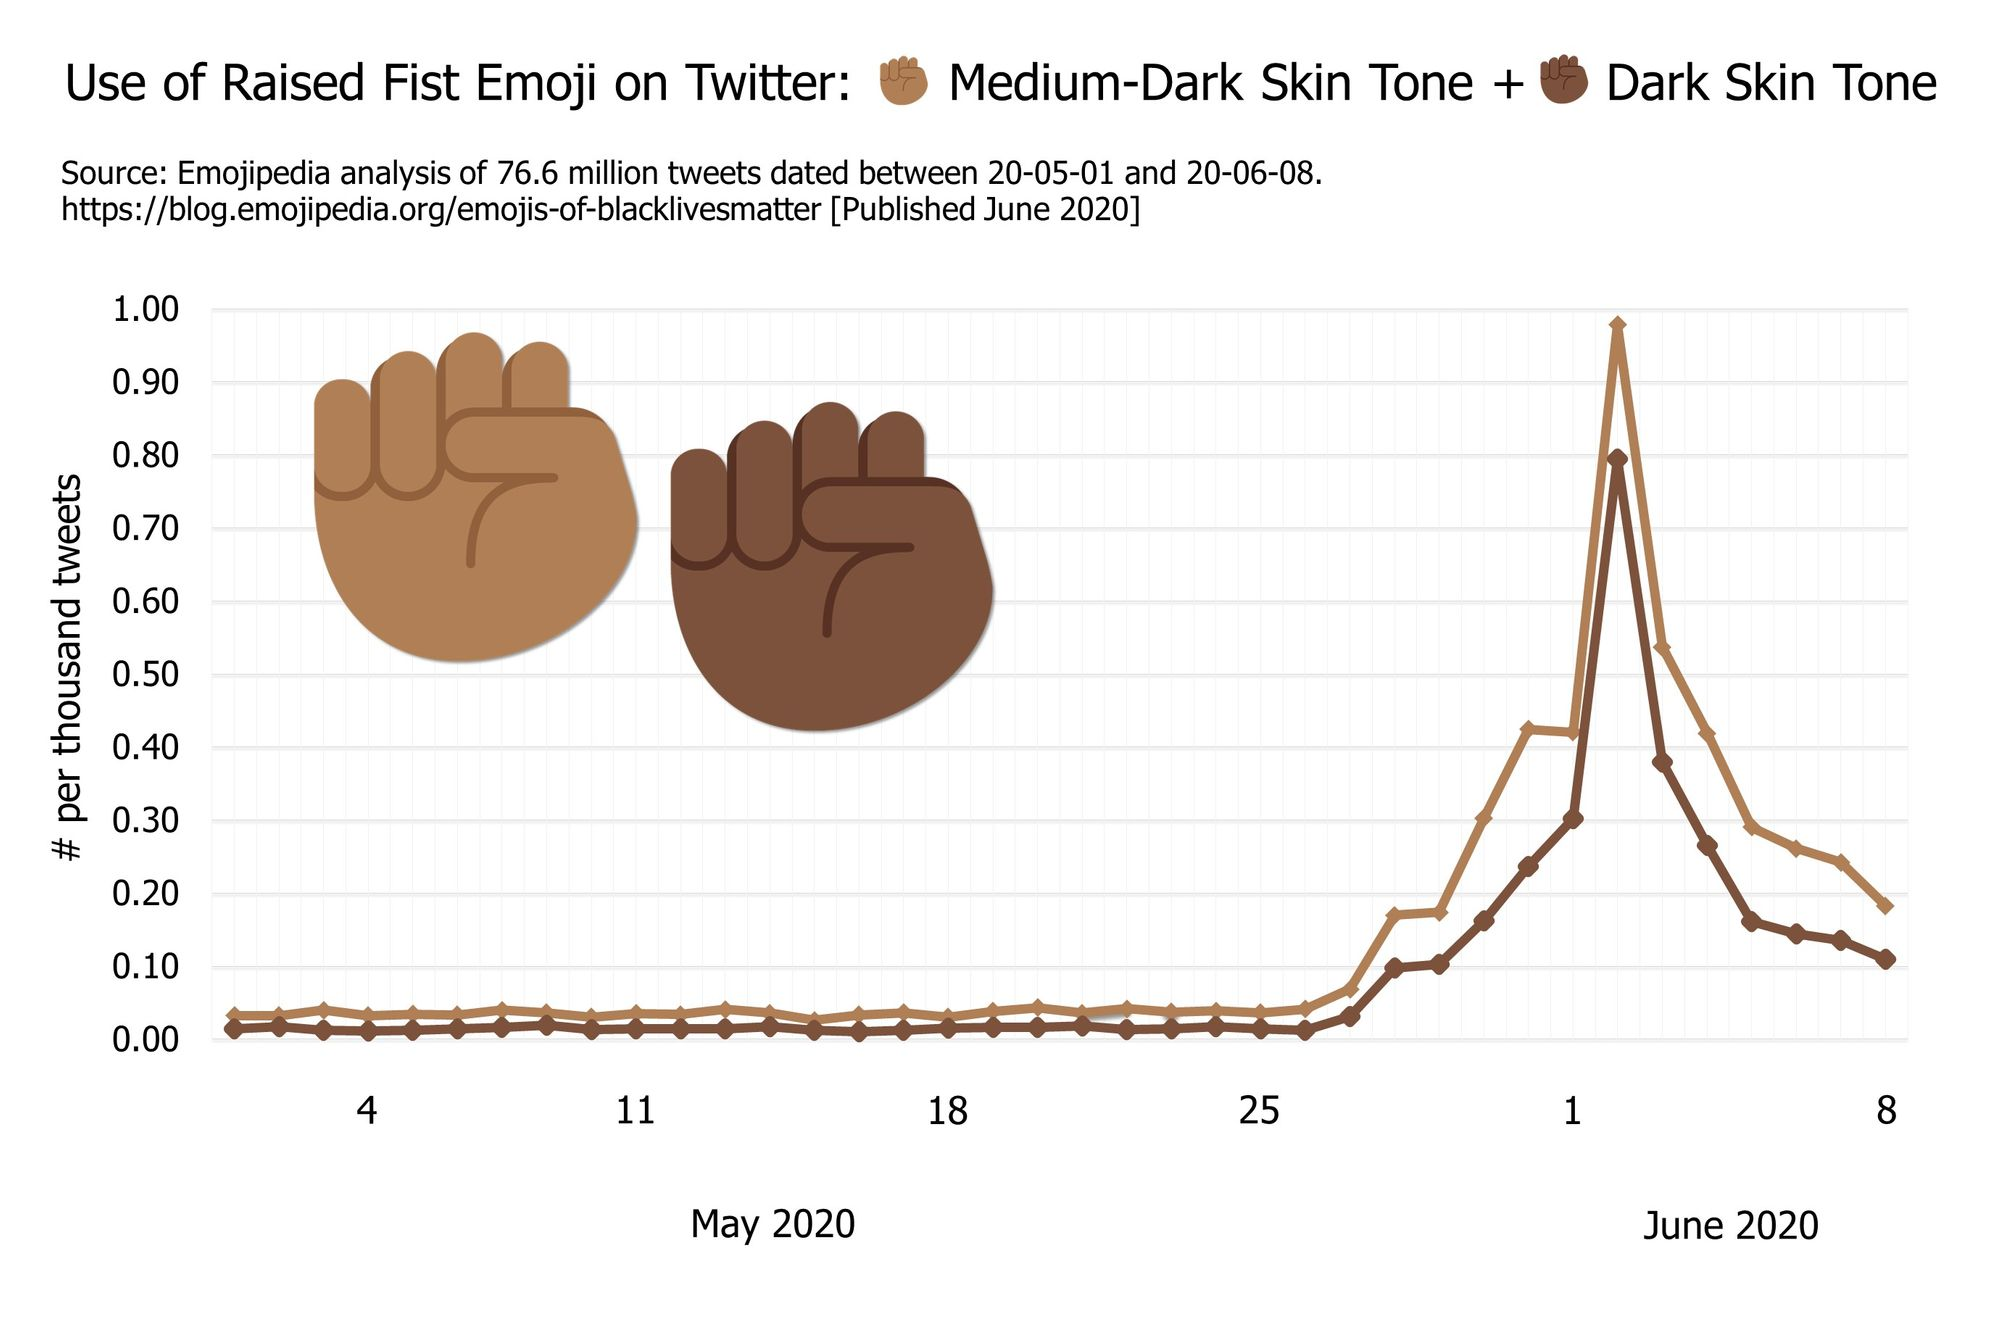 Emojipedia-Black-Lives-Matter---Raised-Fist-Emojis-2